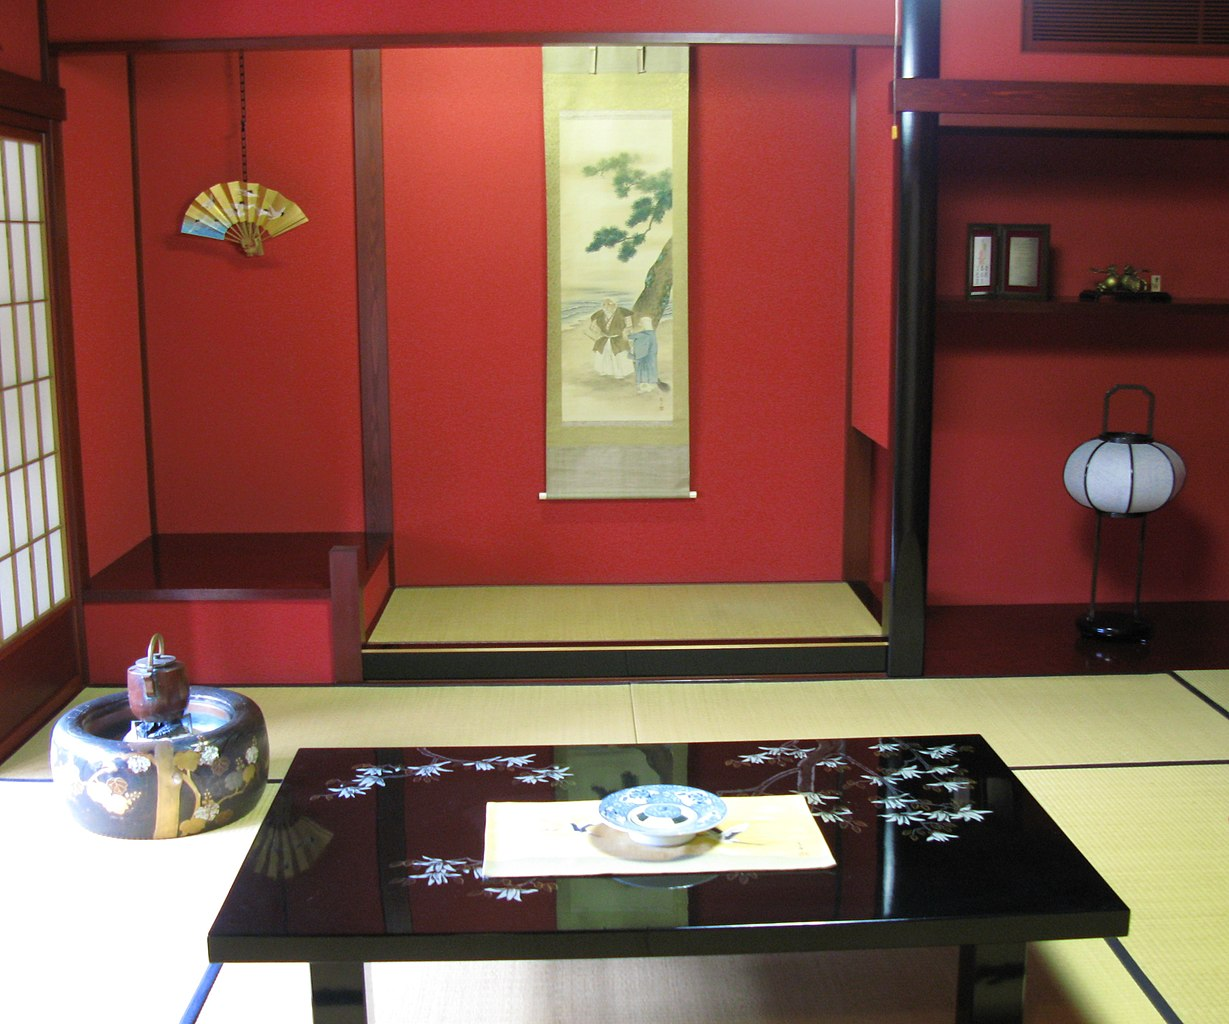 file japanese traditional house interior 金沢 西茶屋資料館 にしぢ